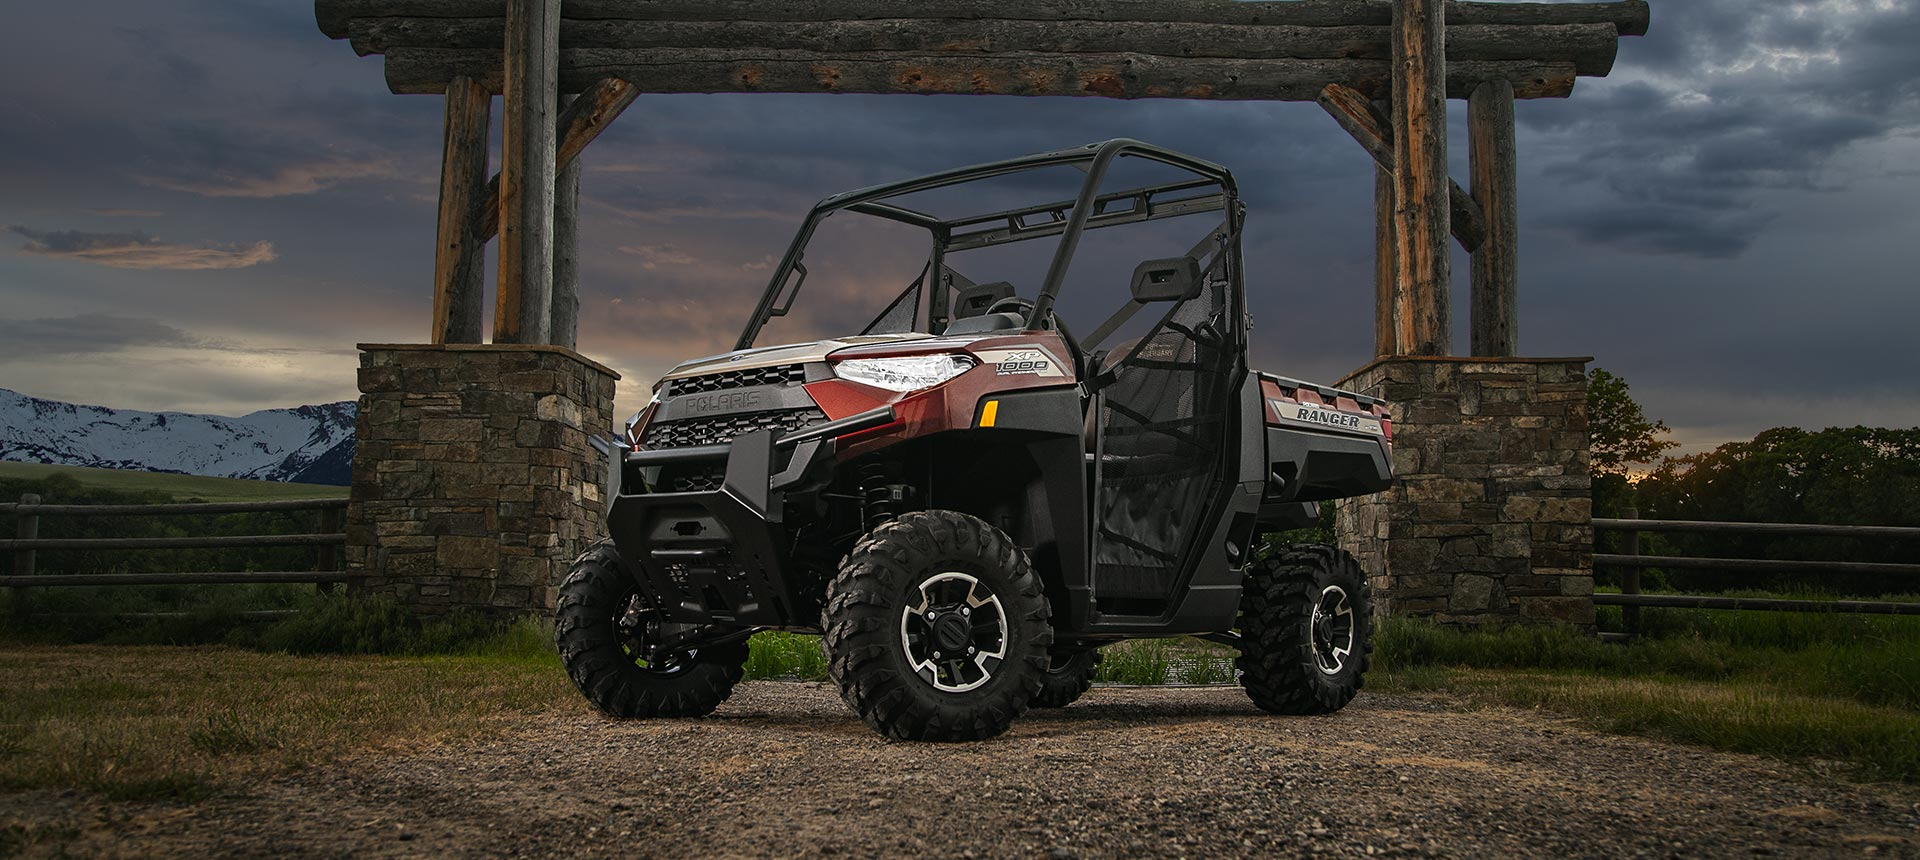 2019 Polaris Ranger XP 1000 EPS in Conroe, Texas - Photo 8